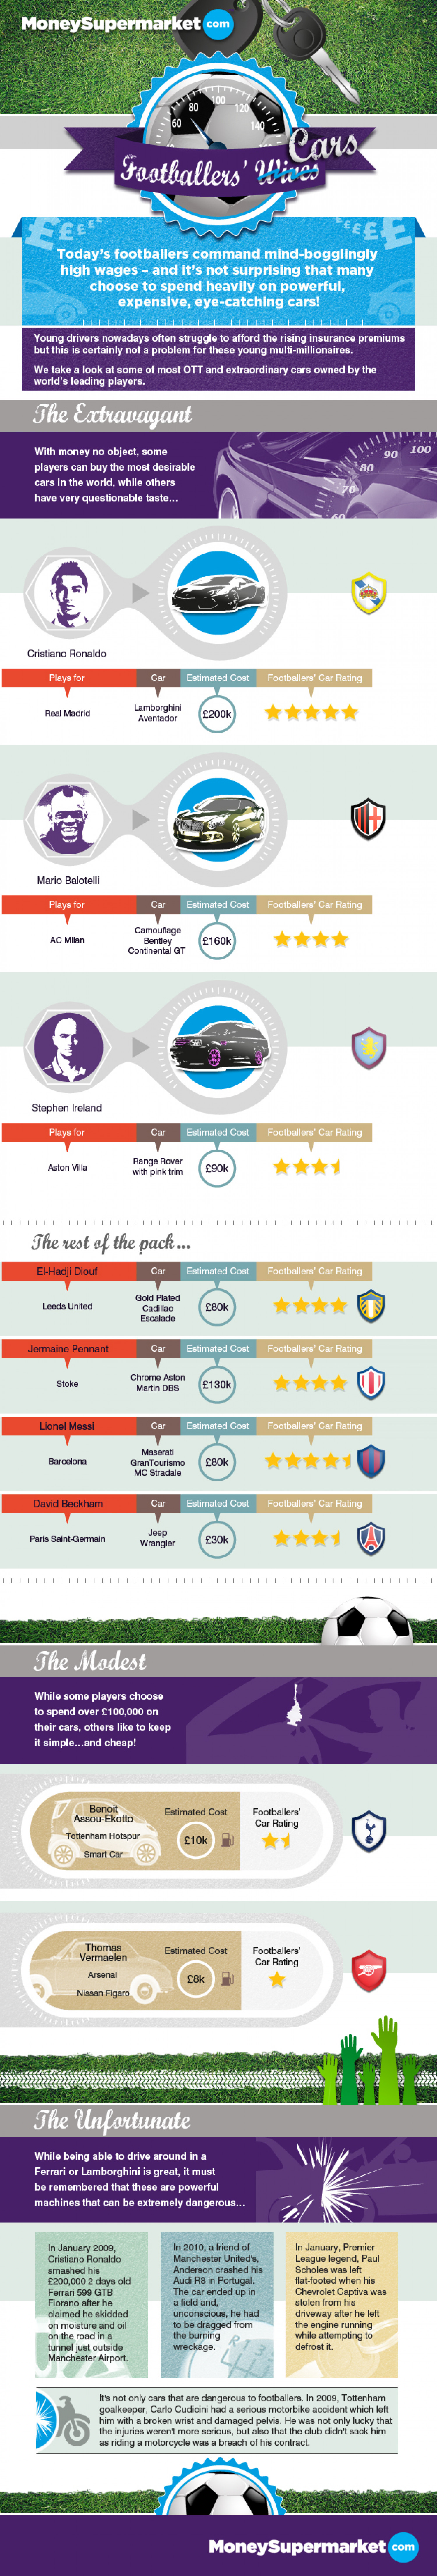 Footballers' Cars Infographic